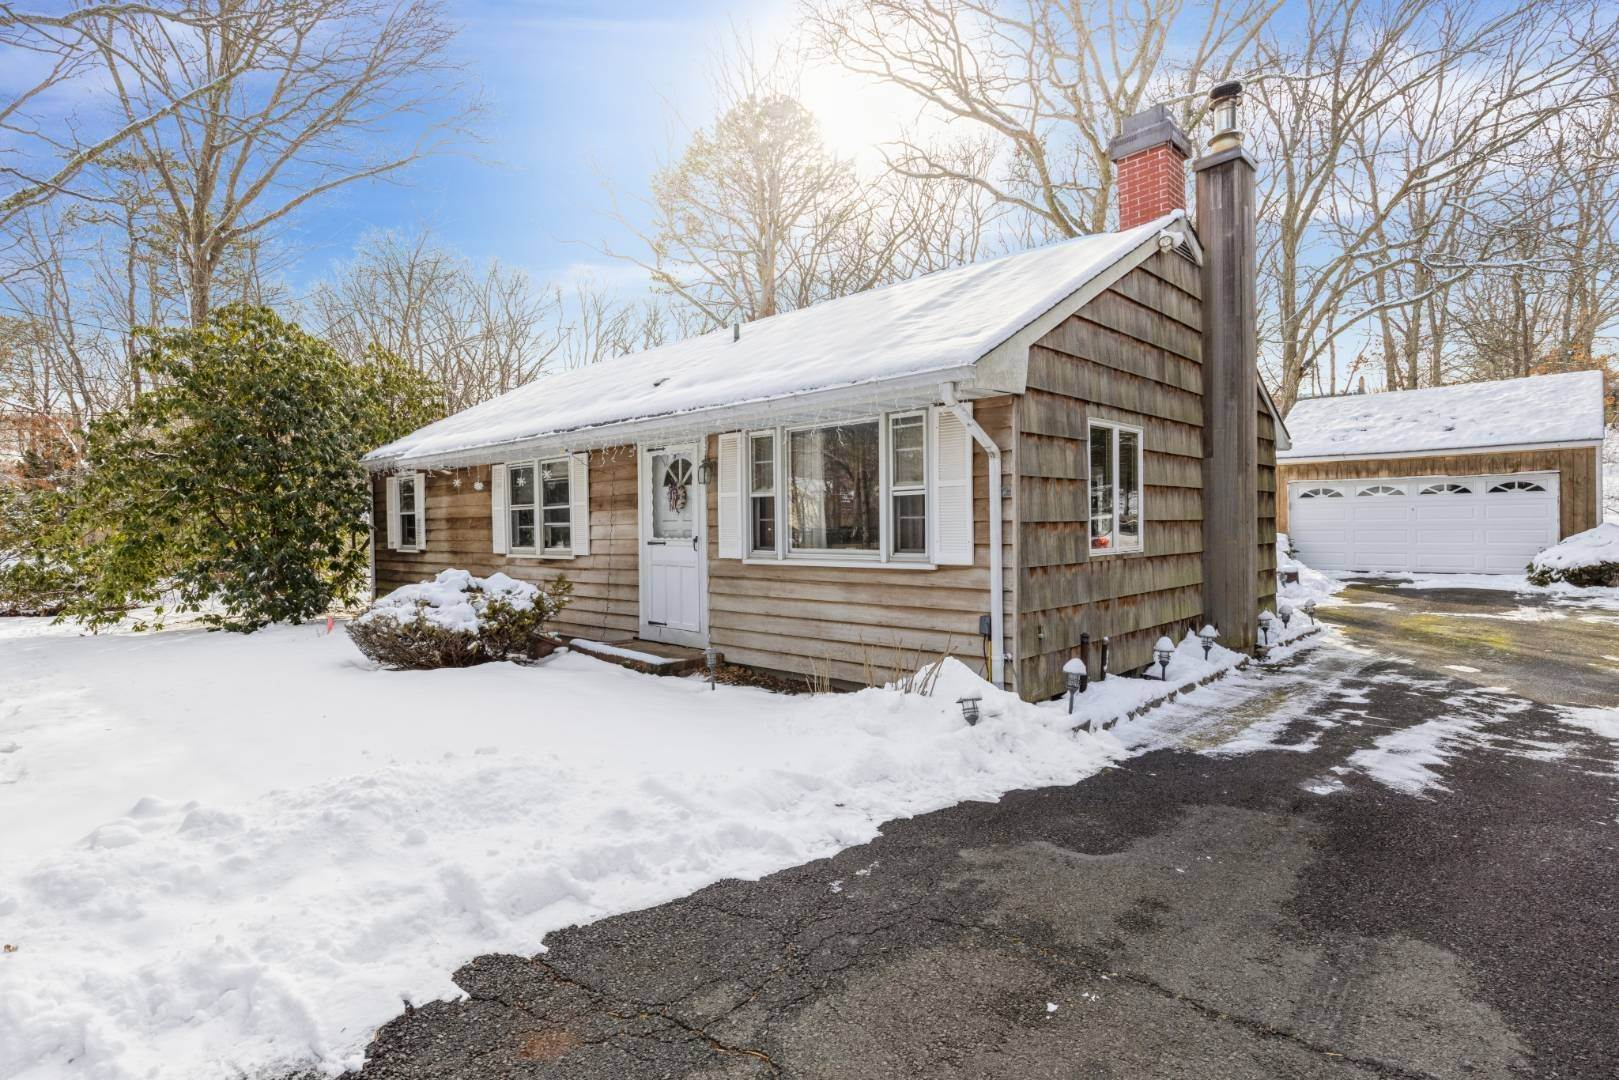 Single Family Home for Sale at Open Floor Plan In Hampton Bays! 45 Washington Heights Ave, Hampton Bays, NY 11946